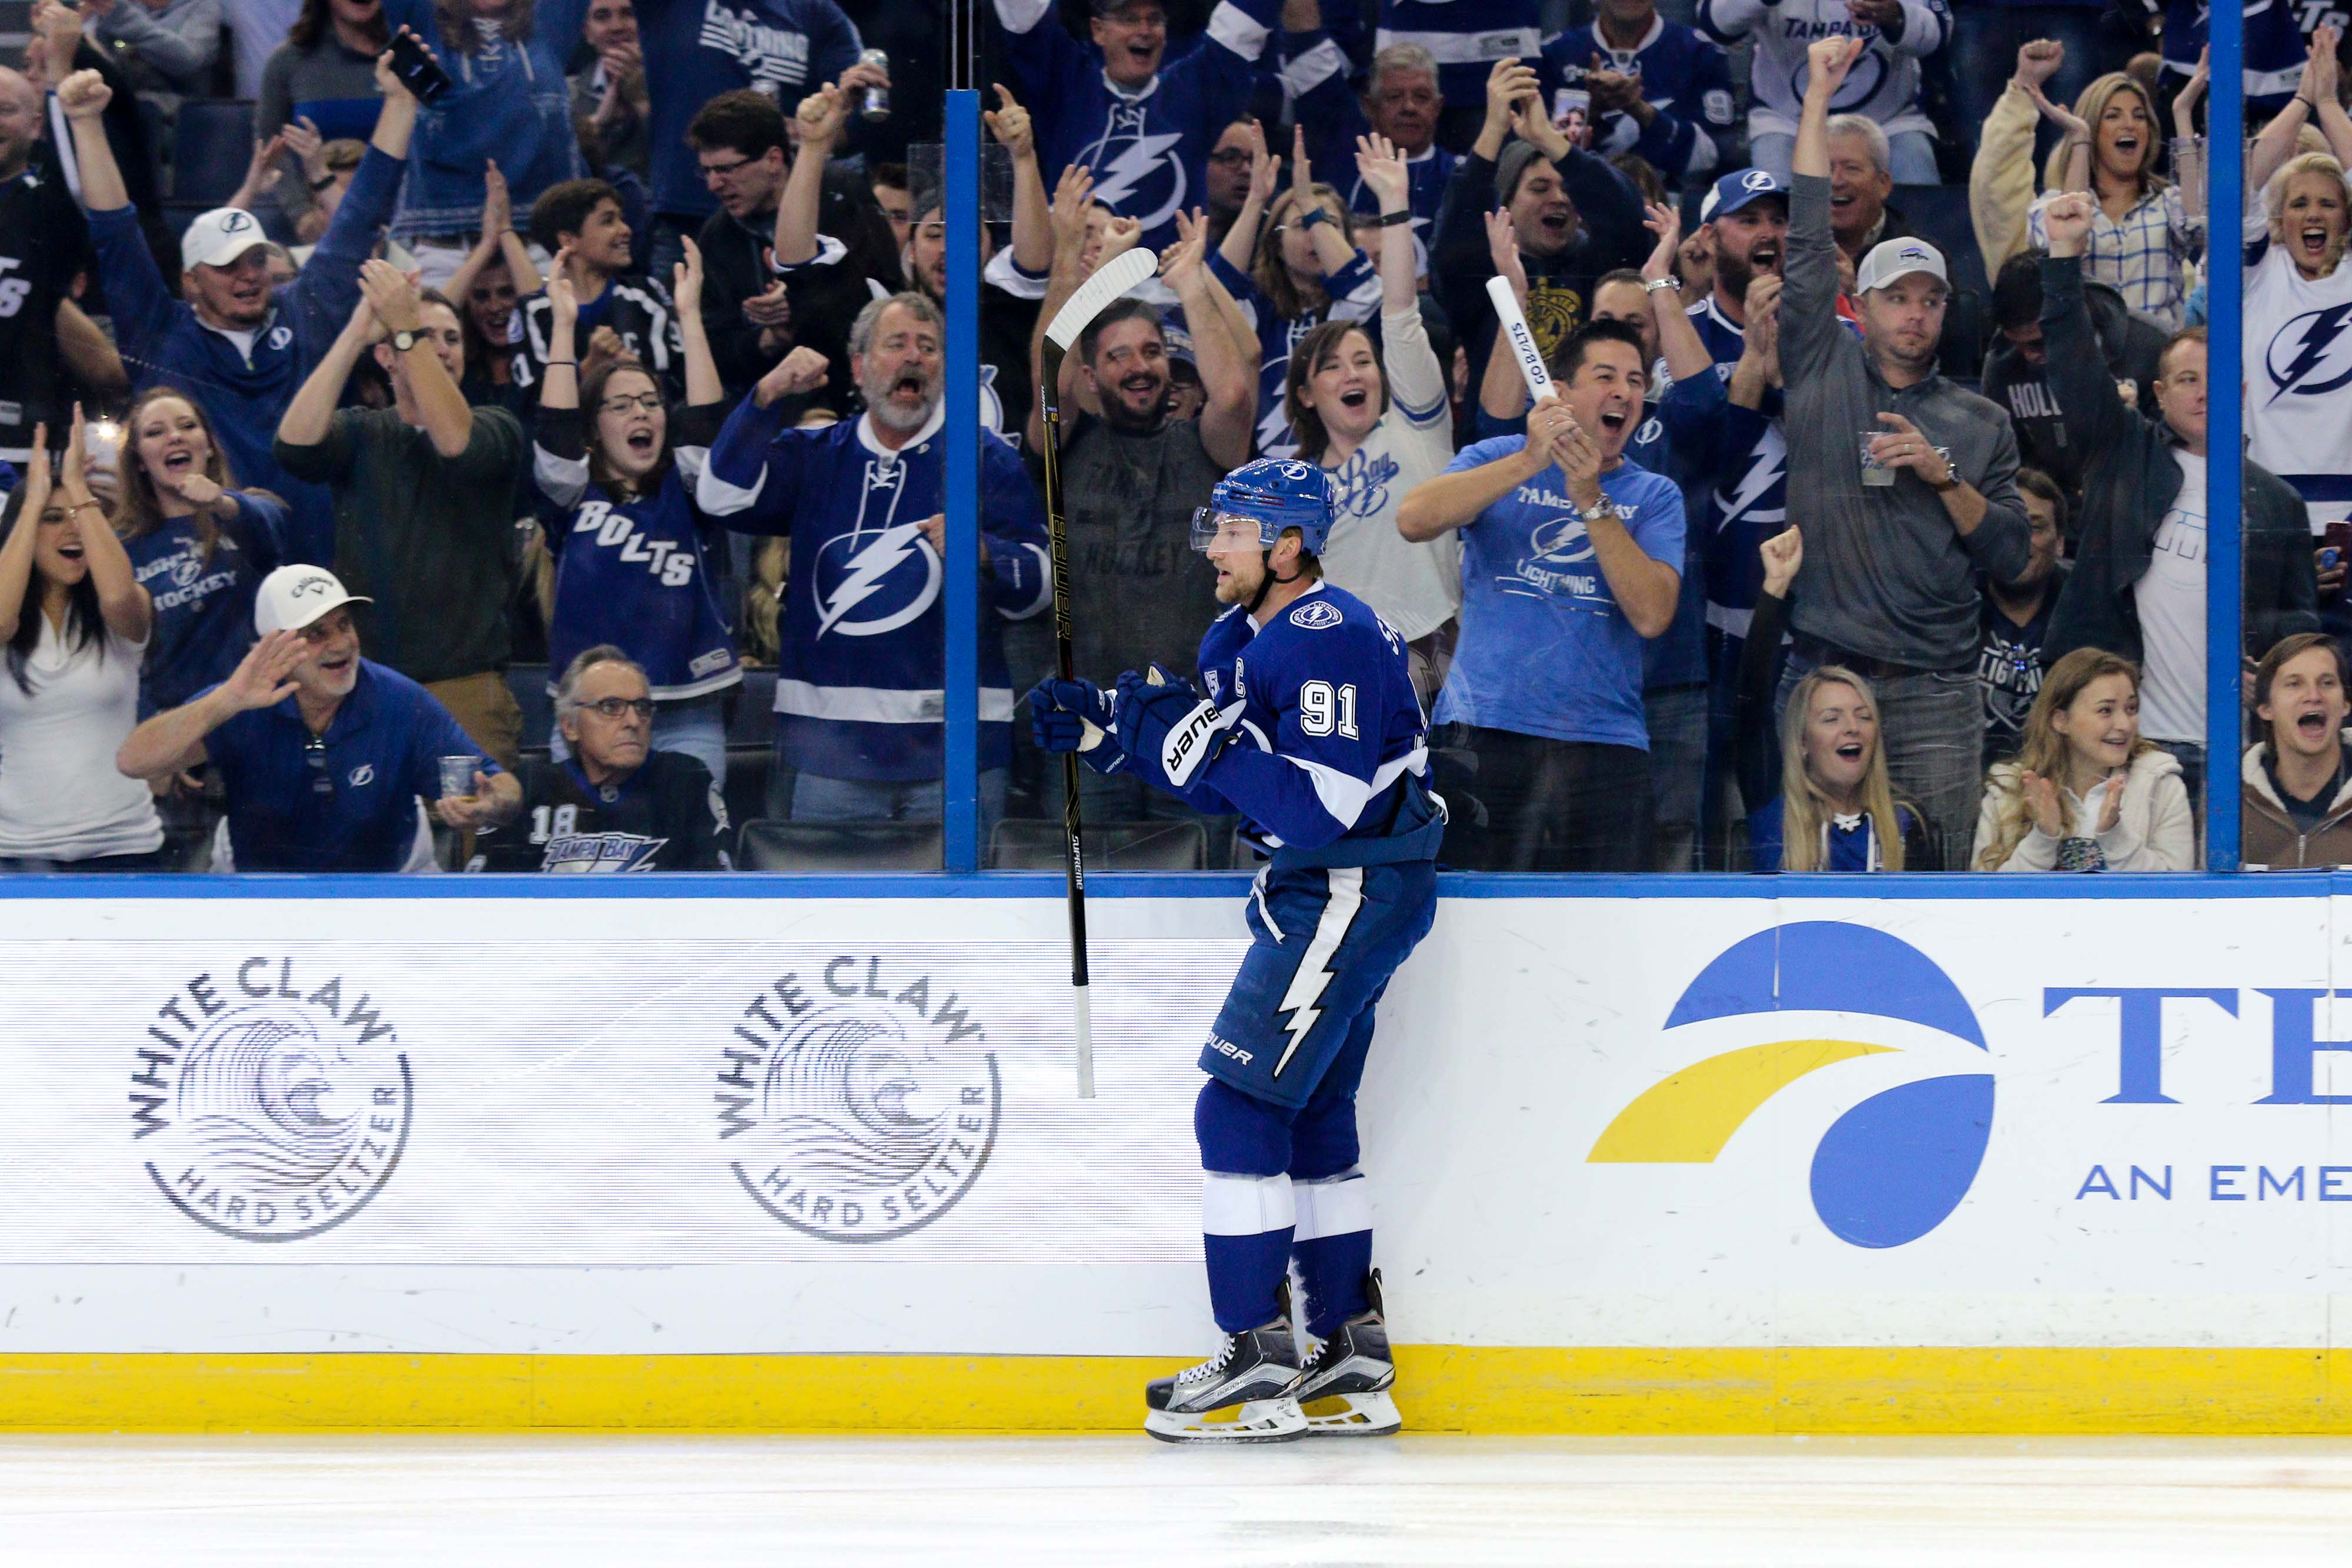 Stamkos reacts after scoring on the Lightning's first shot in the 1st,/ANDREW J. KRAMER